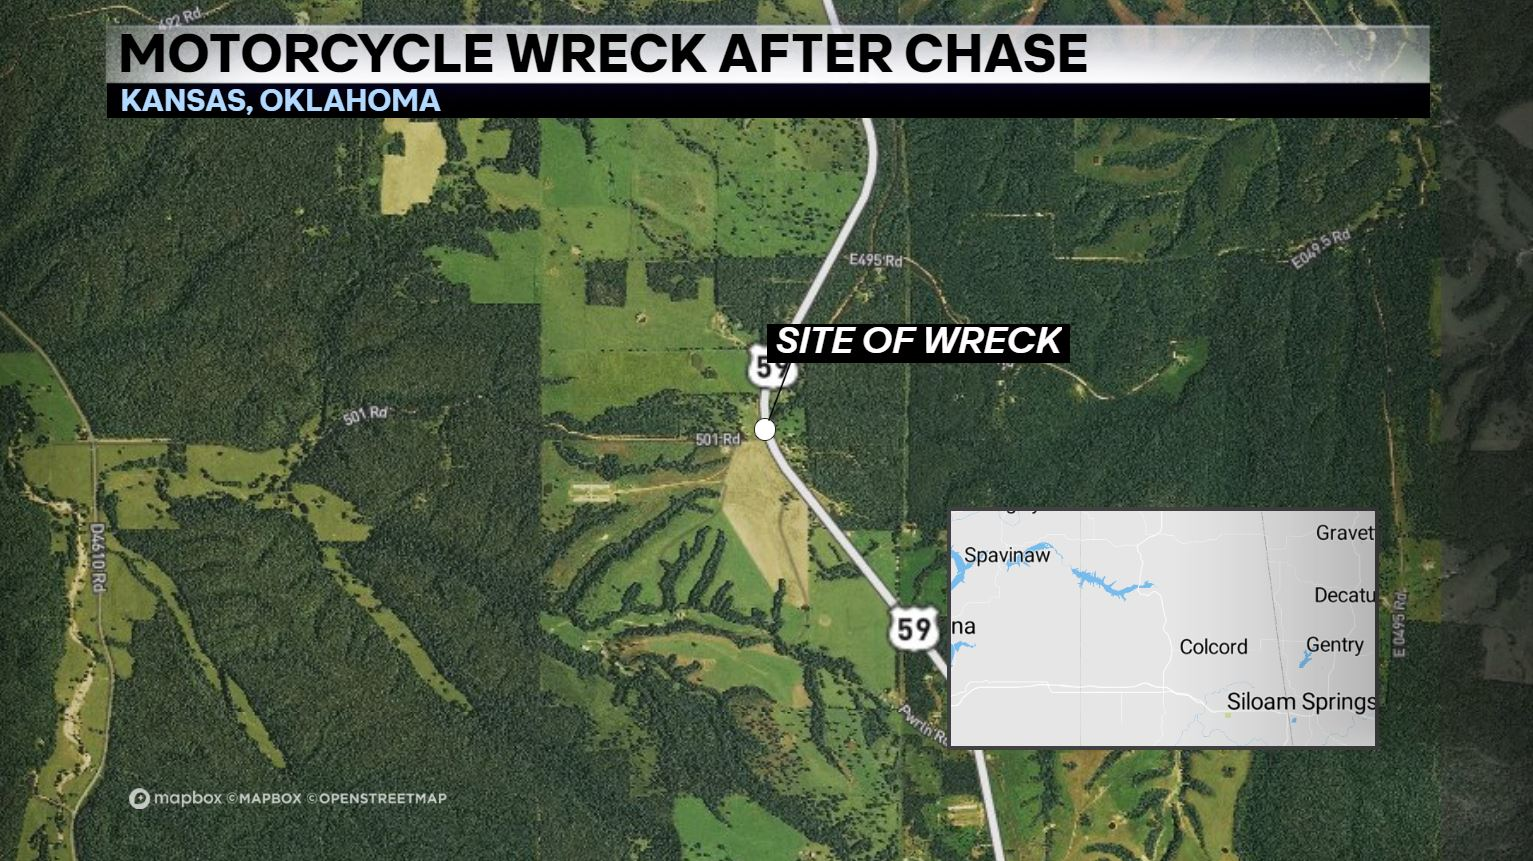 Arkansas Man Injured In Oklahoma Motorcycle Accident After High-Speed Chase